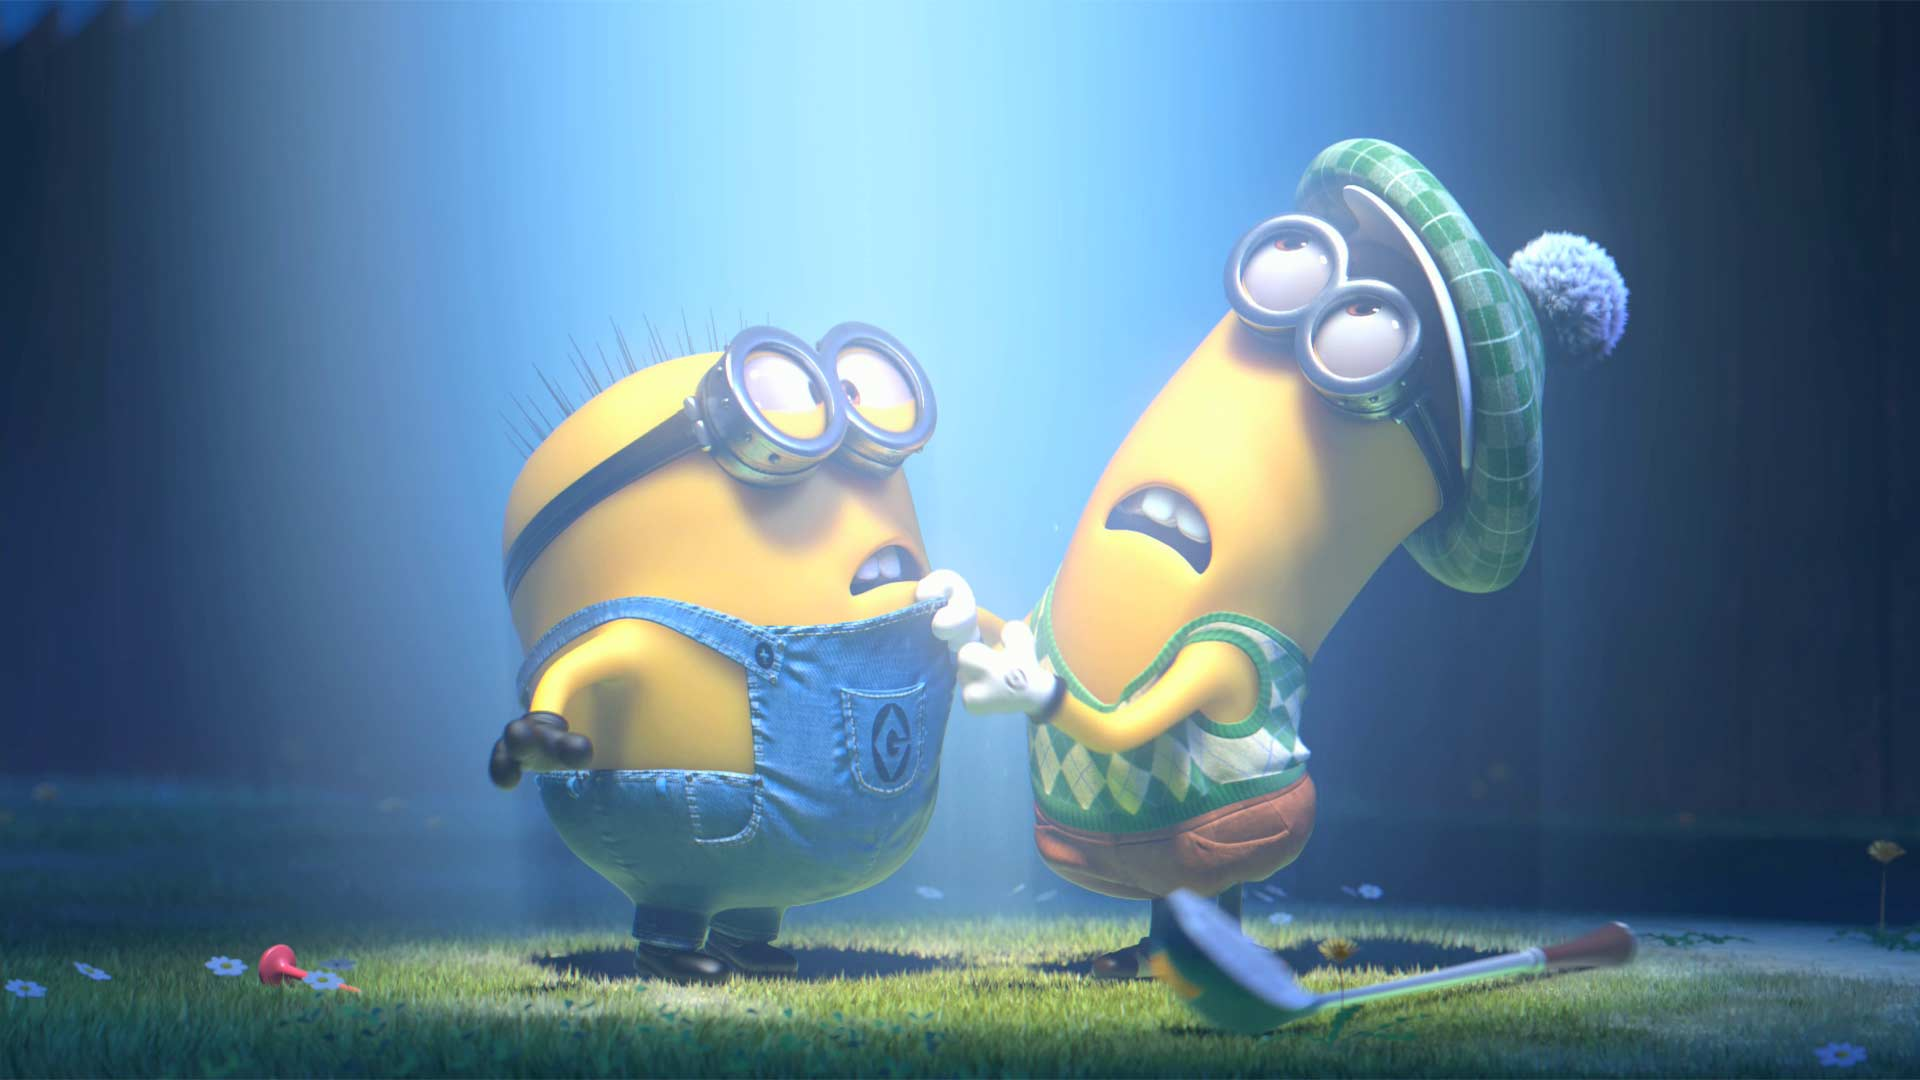 Wallpapers Desktop Backgrounds Despicable Me 2 HD Movie Wallpapers 1920x1080